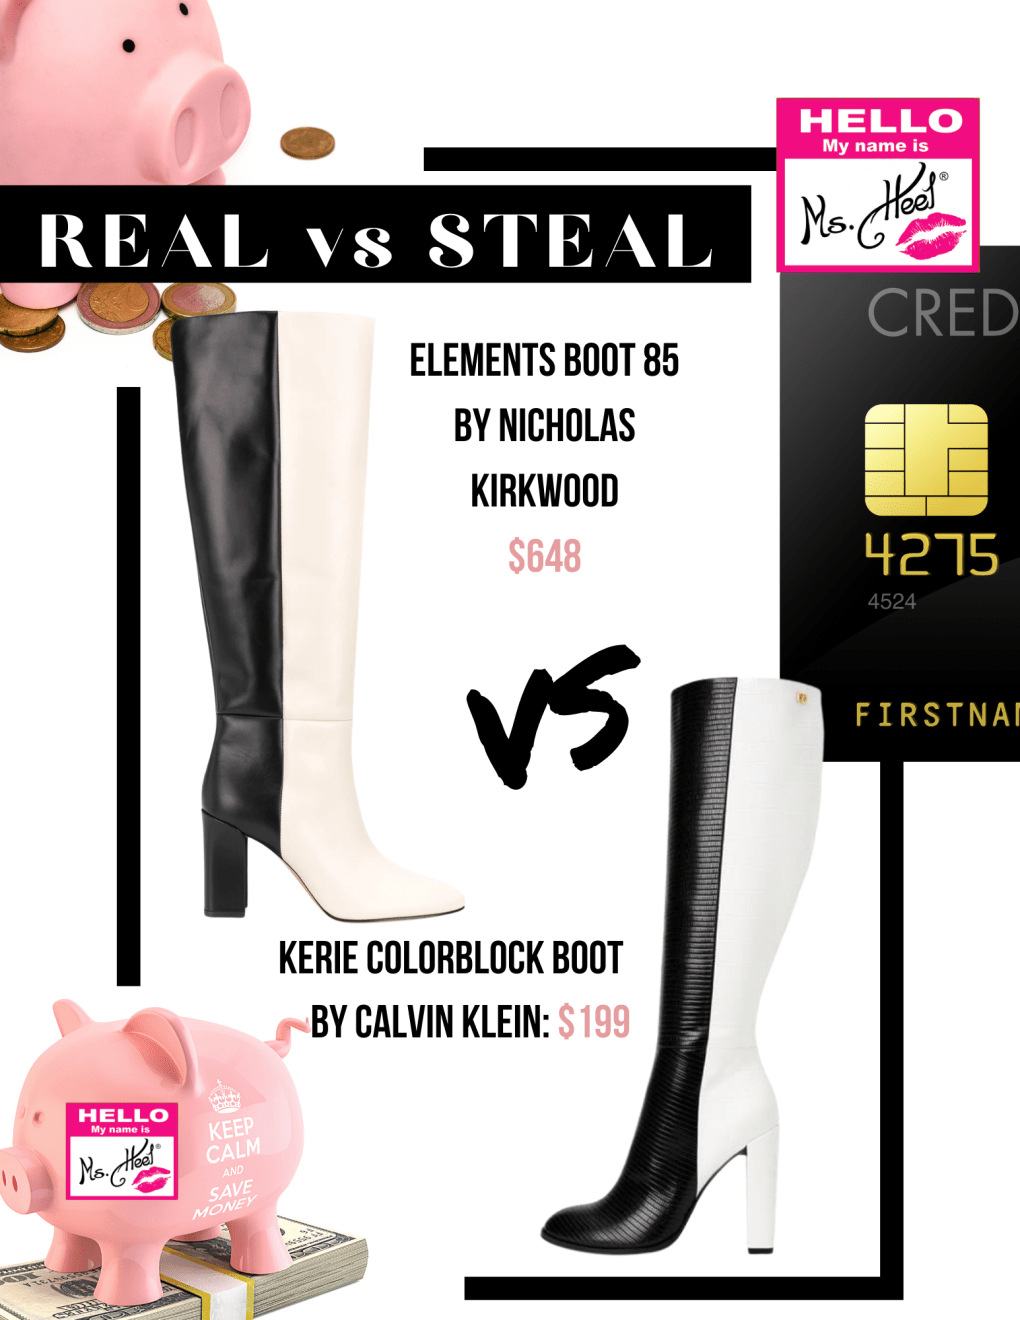 Real vs Steal featuring Nicholas Kirkwood and Calvin Klein.